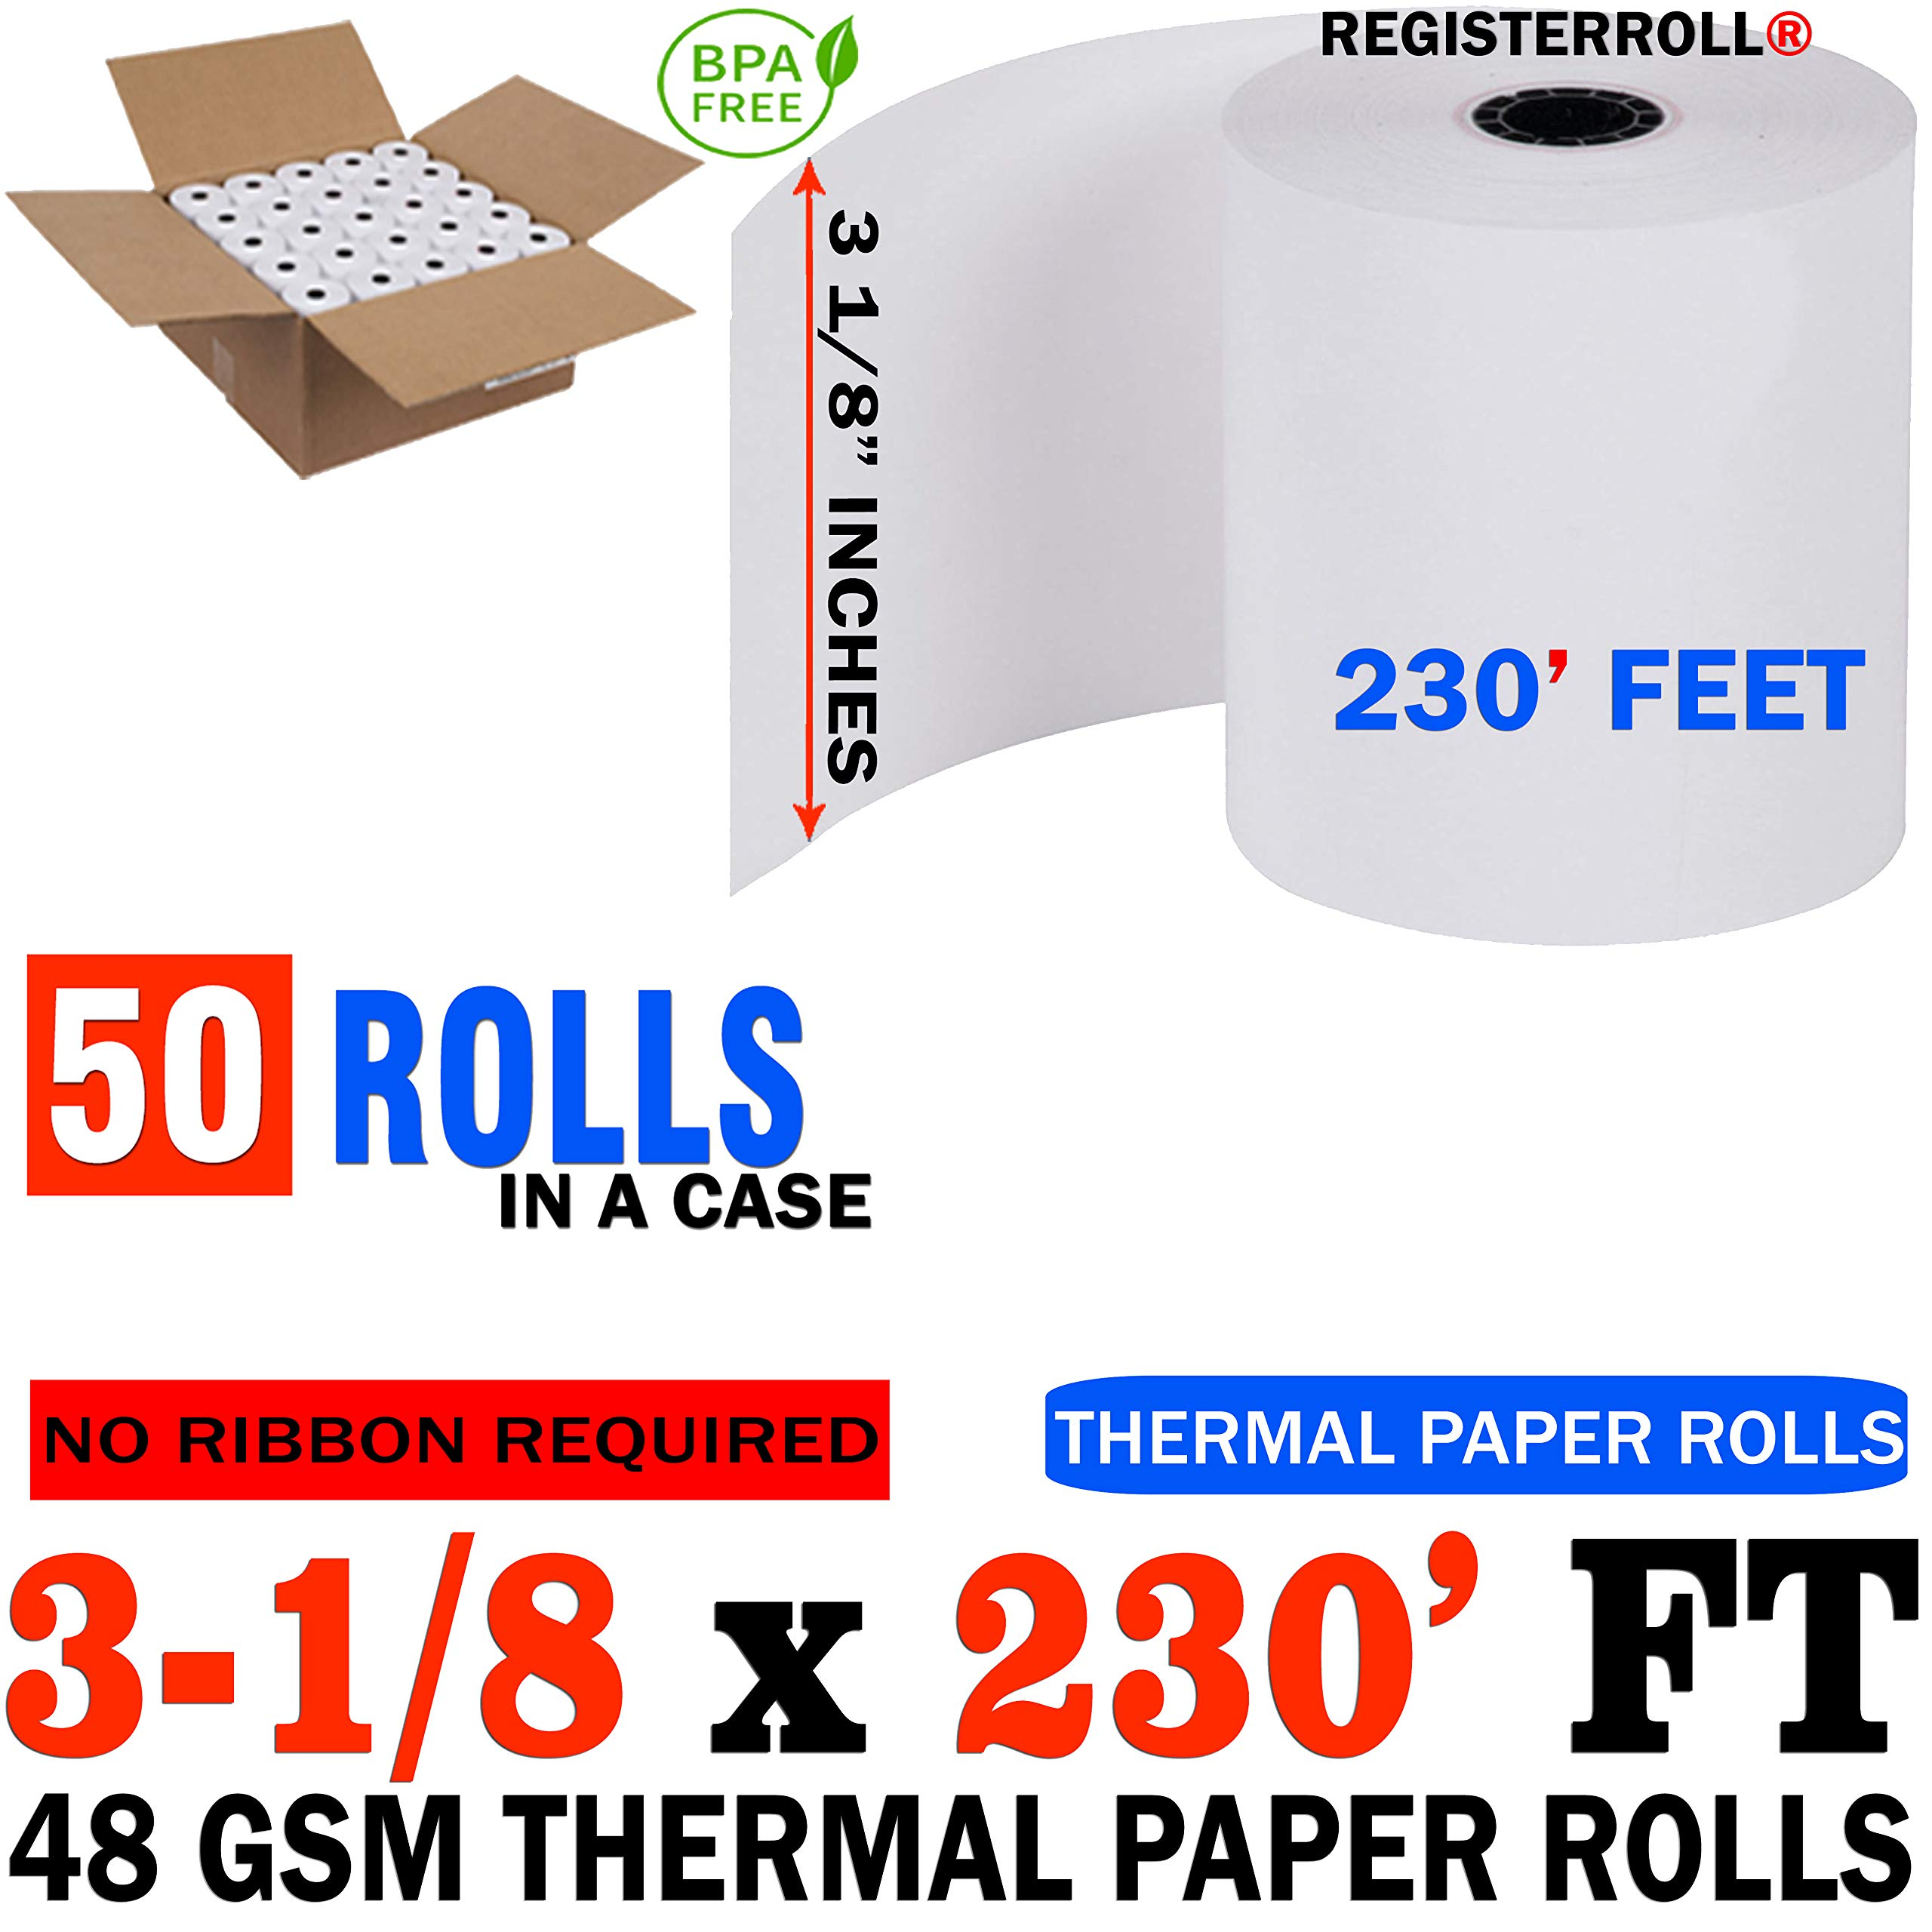 Clover Station Thermal Paper 3 1 8 x 230 Feet Thermal Paper Rolls for POS-X XR500 SRP-350plus SRP-352plus TM-T88 T-20 T-90 Bixolon SRP-350 370 | 50 No Bpa Premium Paper for Most Receipt Pos Printers by ✅ RegisterRoll